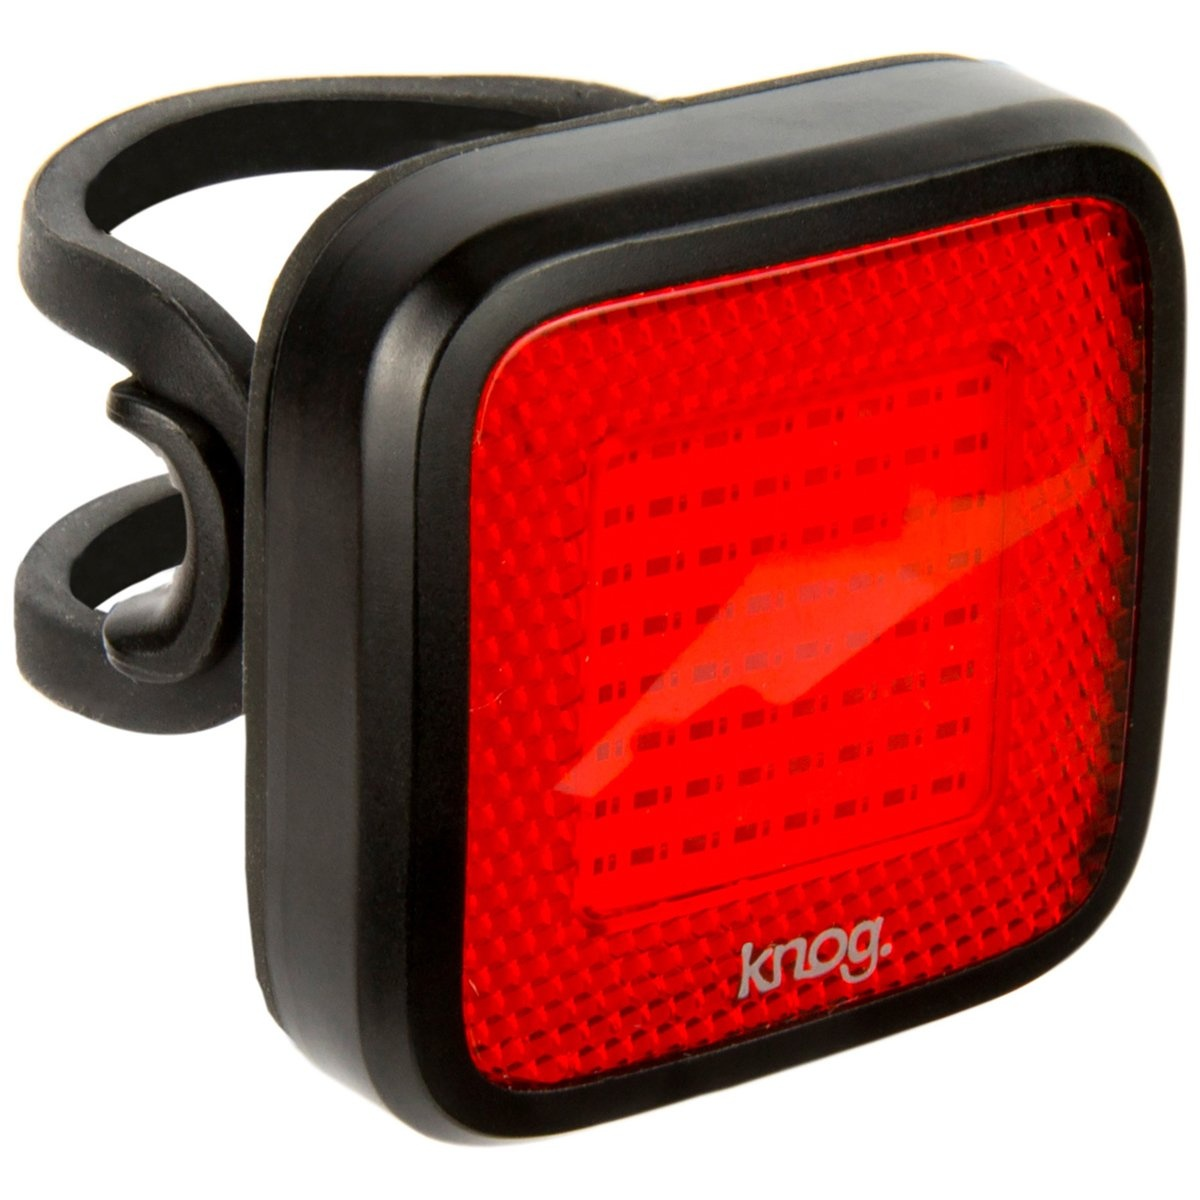 Knog Blinder Mob Mr Chips Baglygte - 44 lumen - Sort